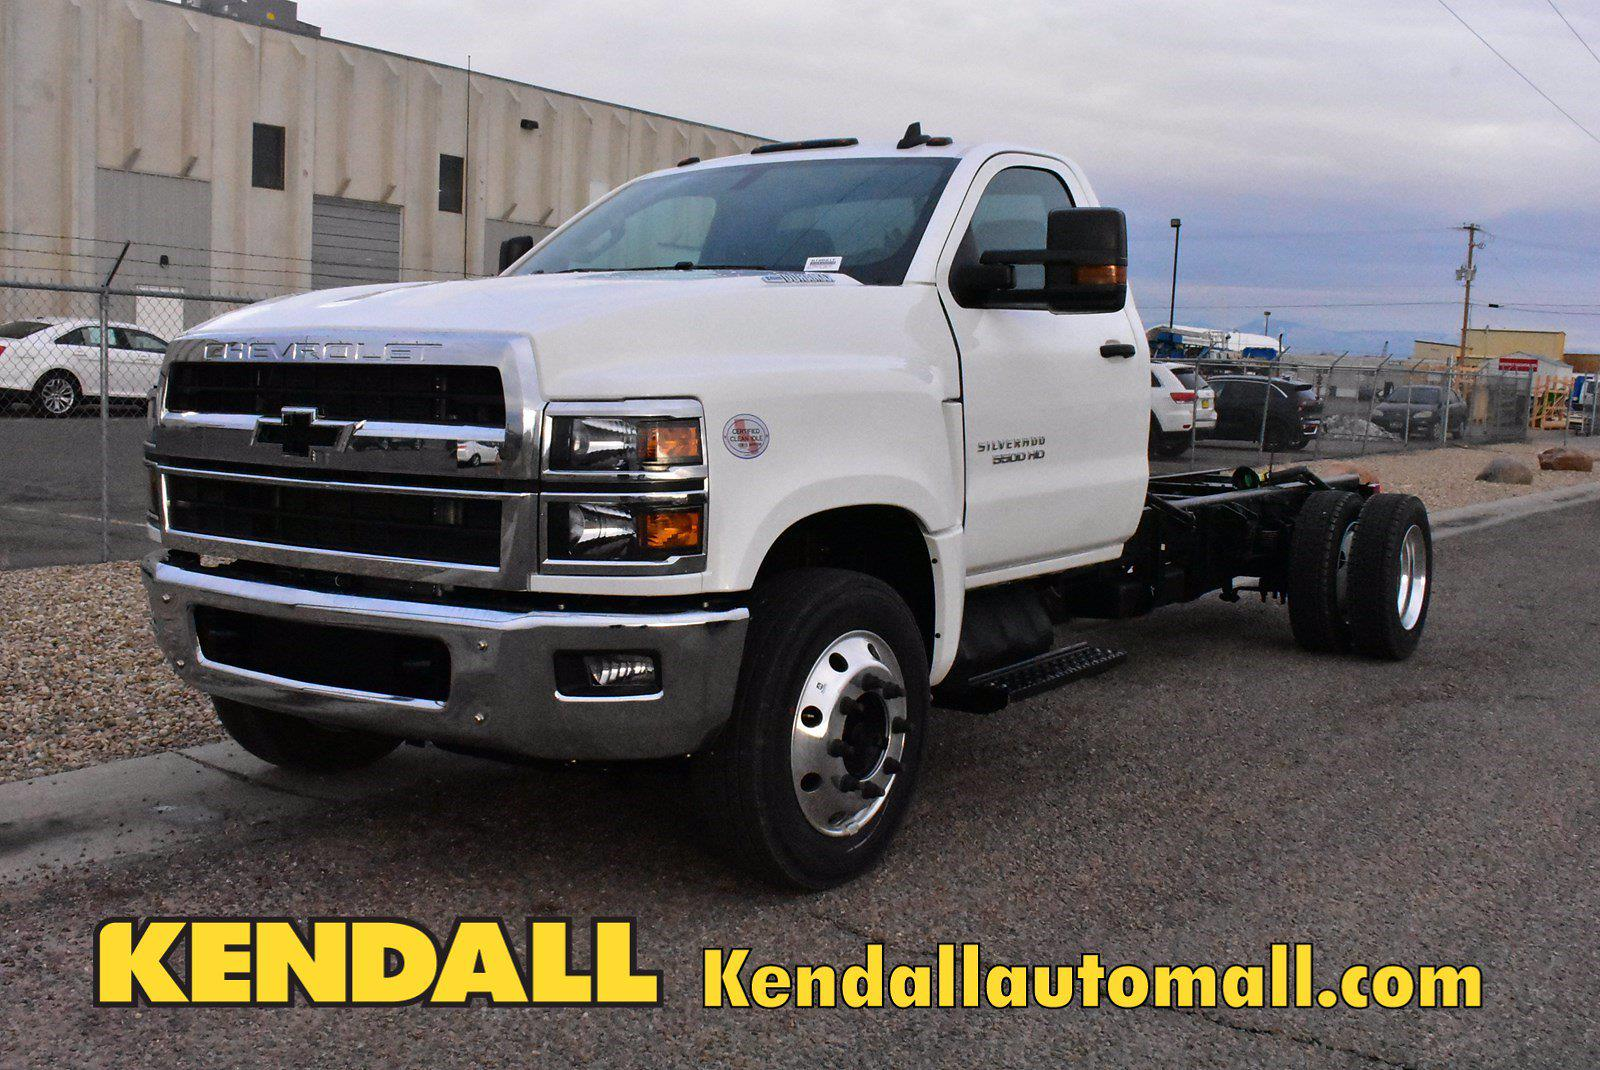 2020 Chevrolet Silverado 5500 DRW 4x2, Cab Chassis #D100217 - photo 1